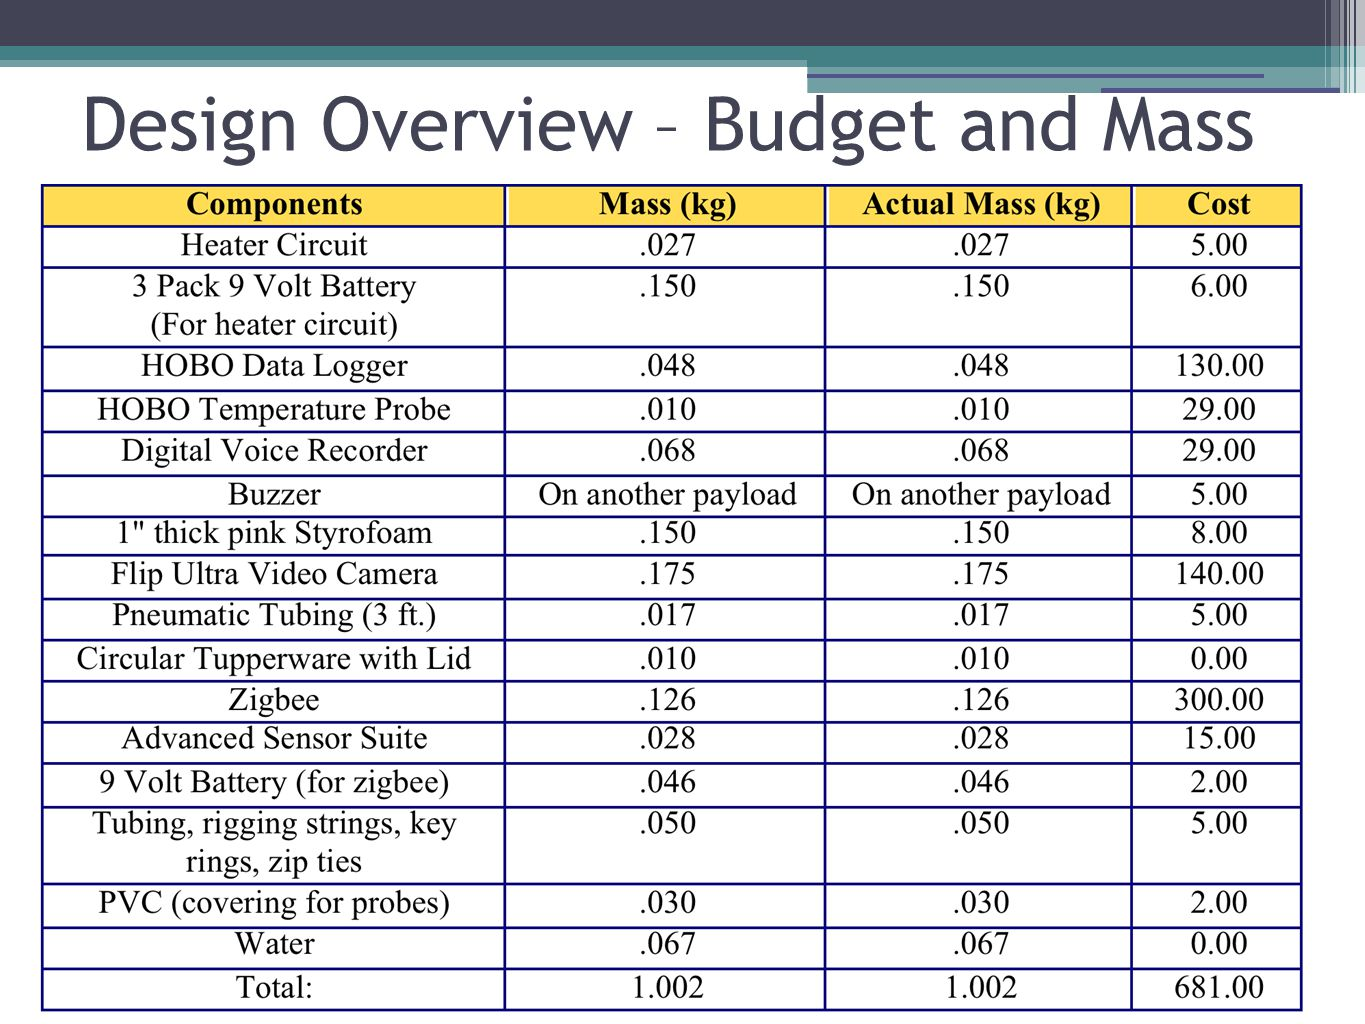 Design Overview – Budget and Mass